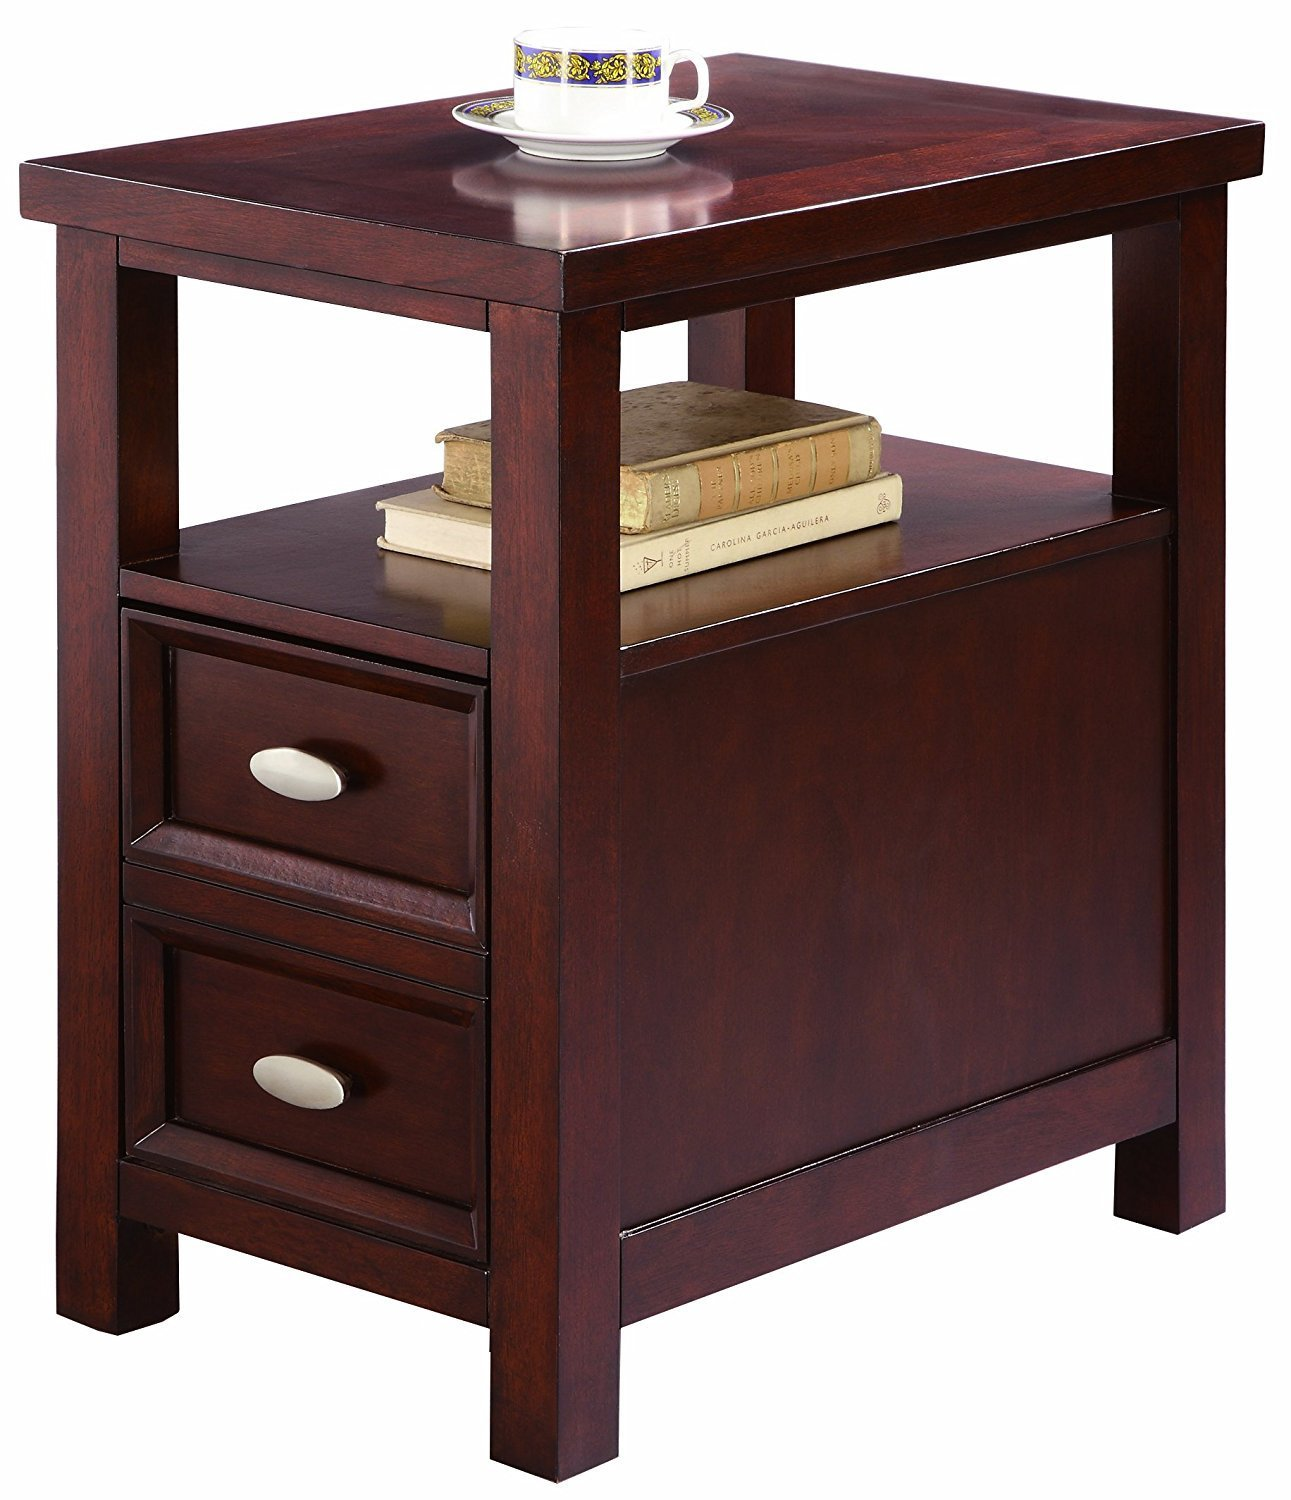 Narrow End Table With Drawers Home Furniture Design